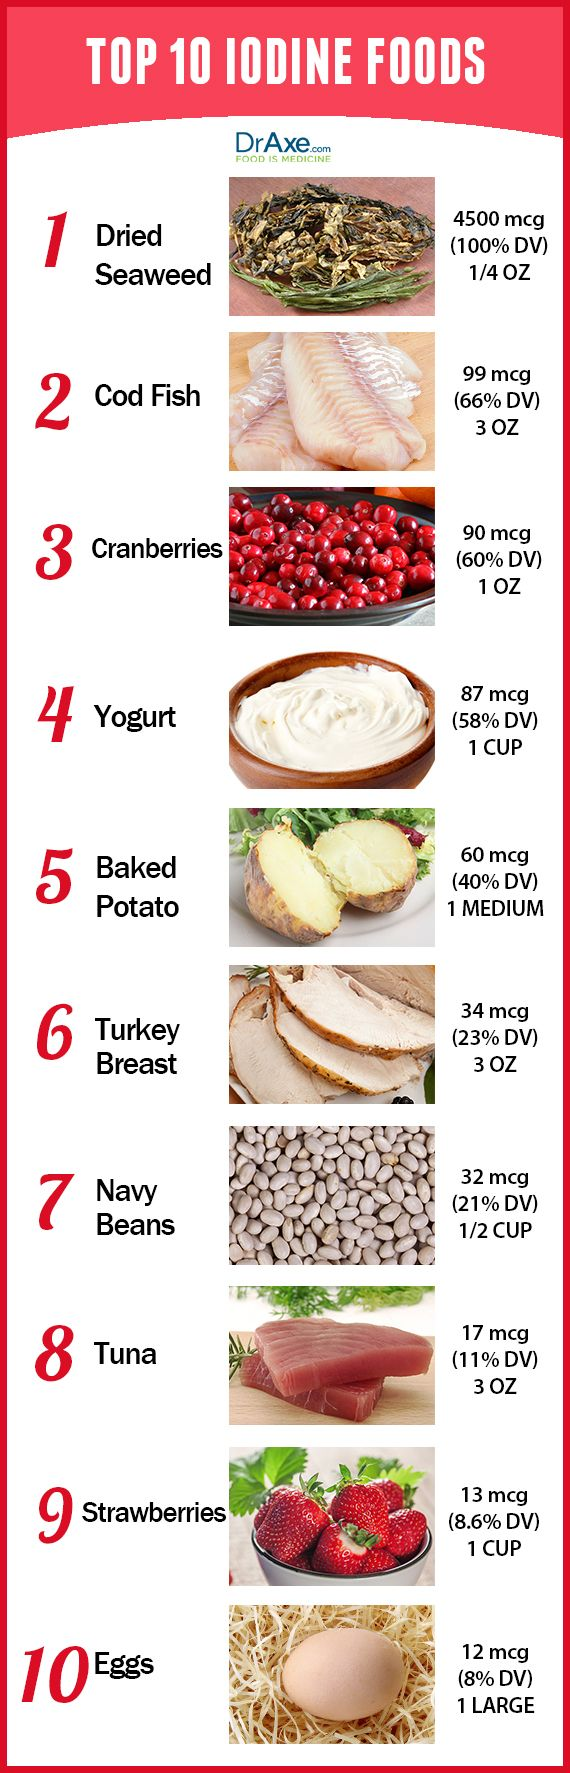 Benefits of iodine include healthy hair and skin and a healthy thyroid gland. Try these Top 10 Iodine Rich Foods to get your daily dose today!